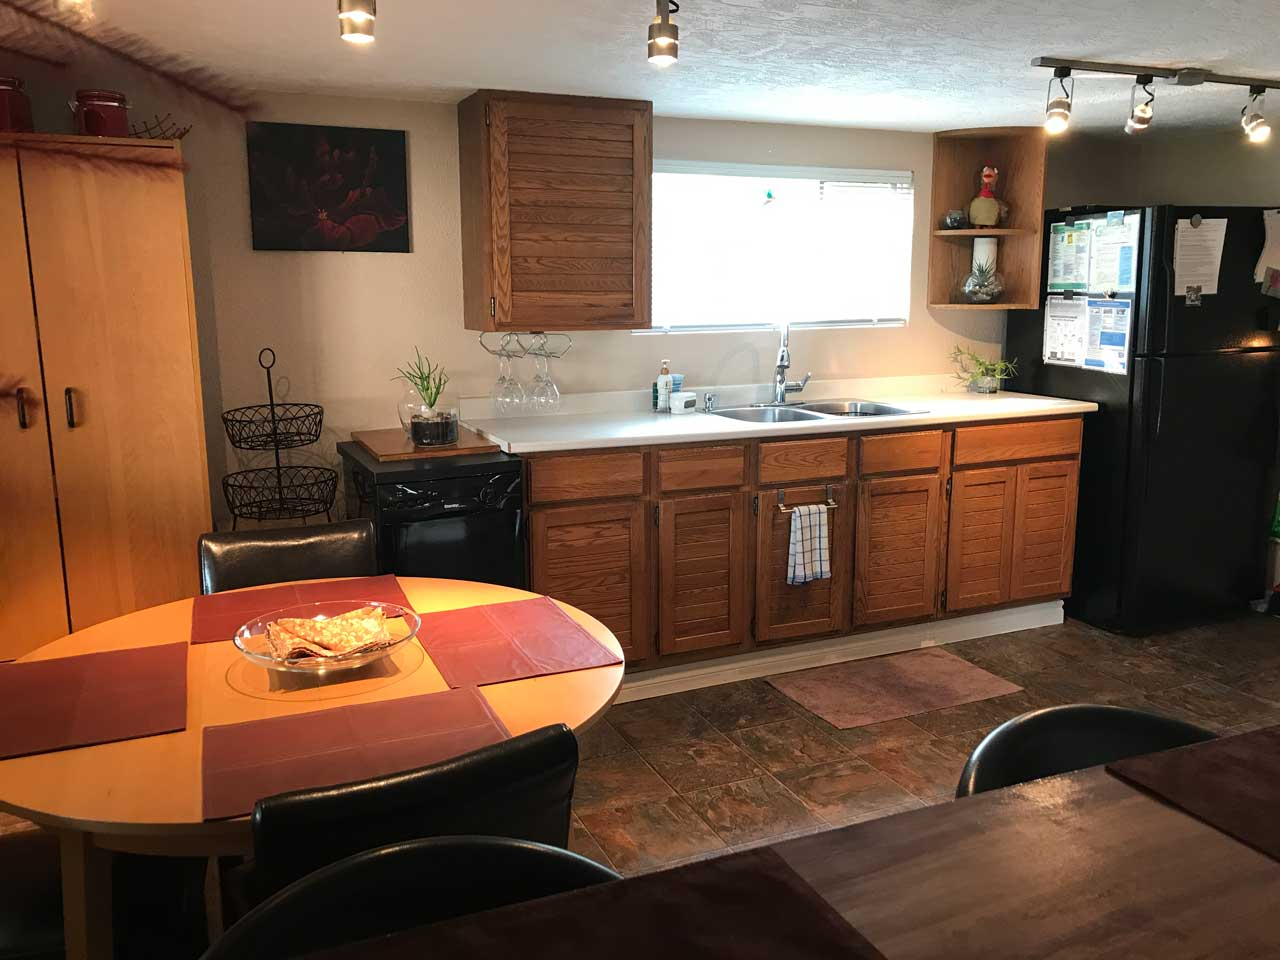 Lakeview rental homes garden apartment kitchen